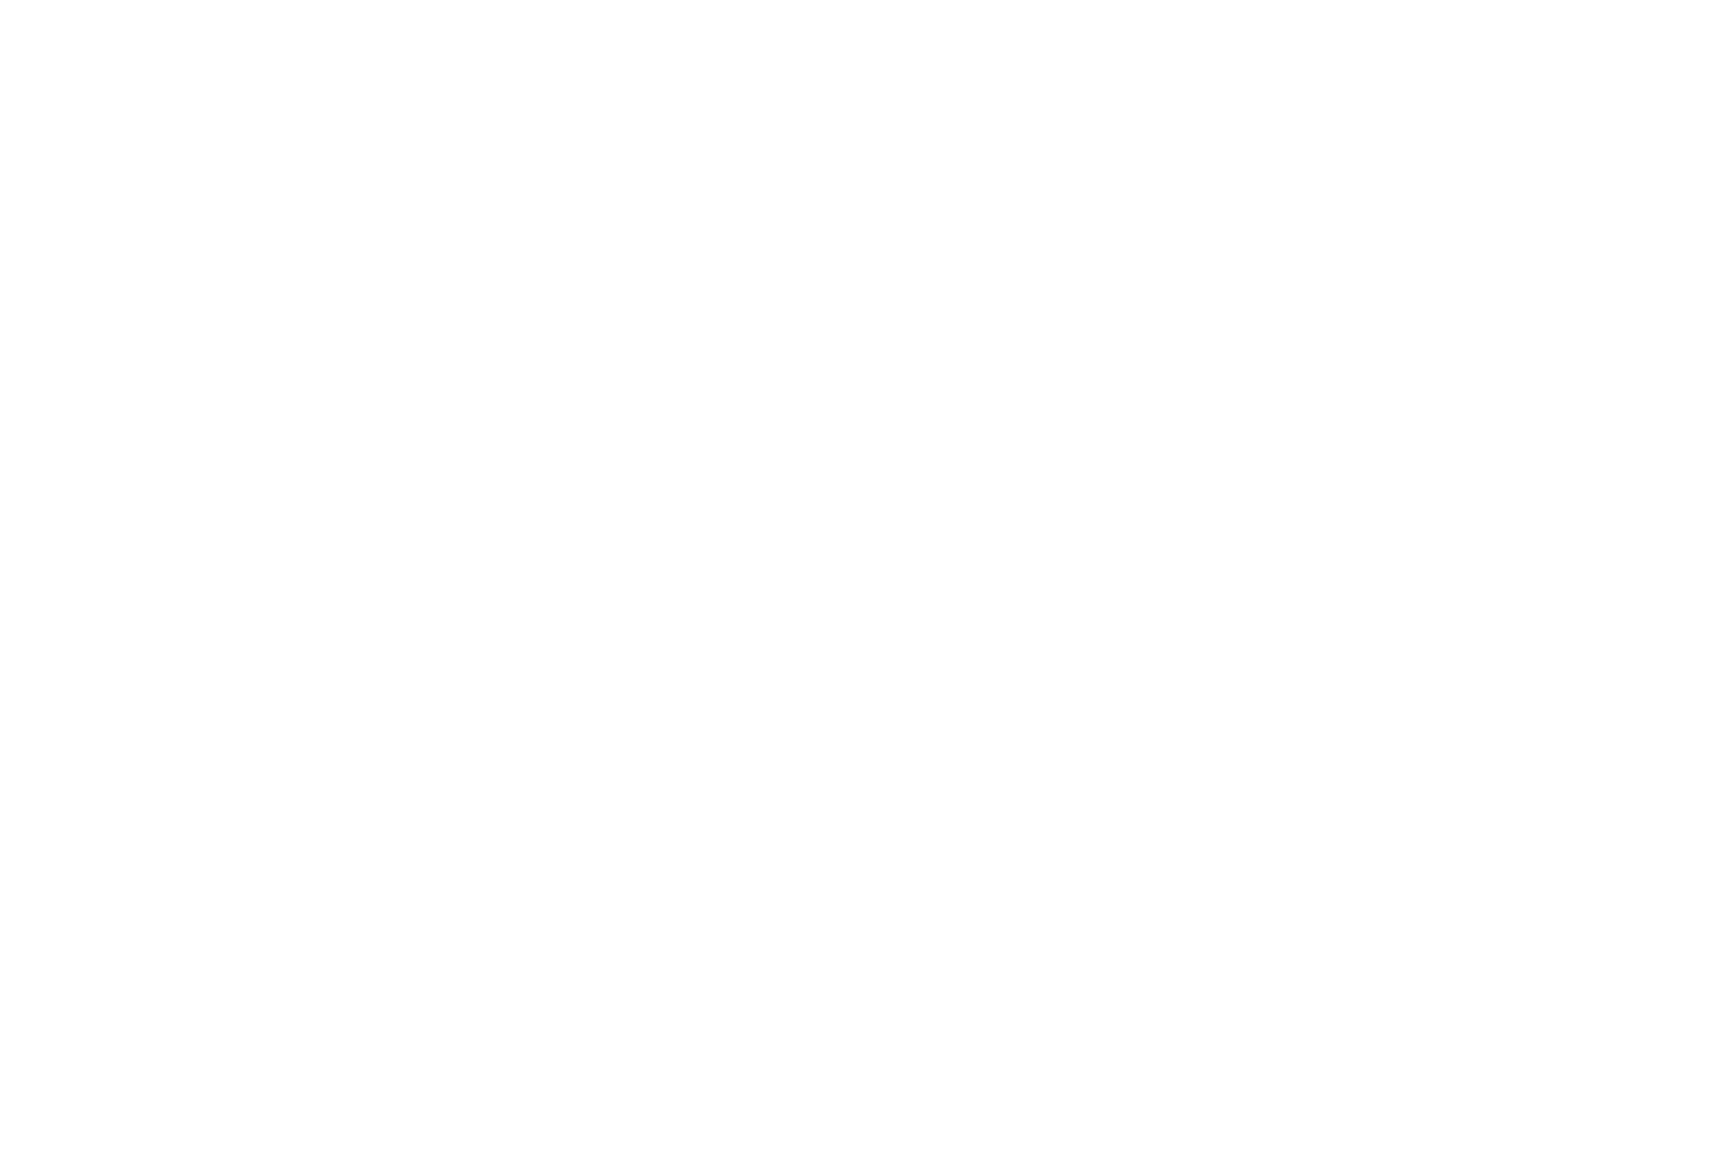 OFFICIAL SELECTION - Atlantic Ave Film Festival 2017 - Letting Go.png